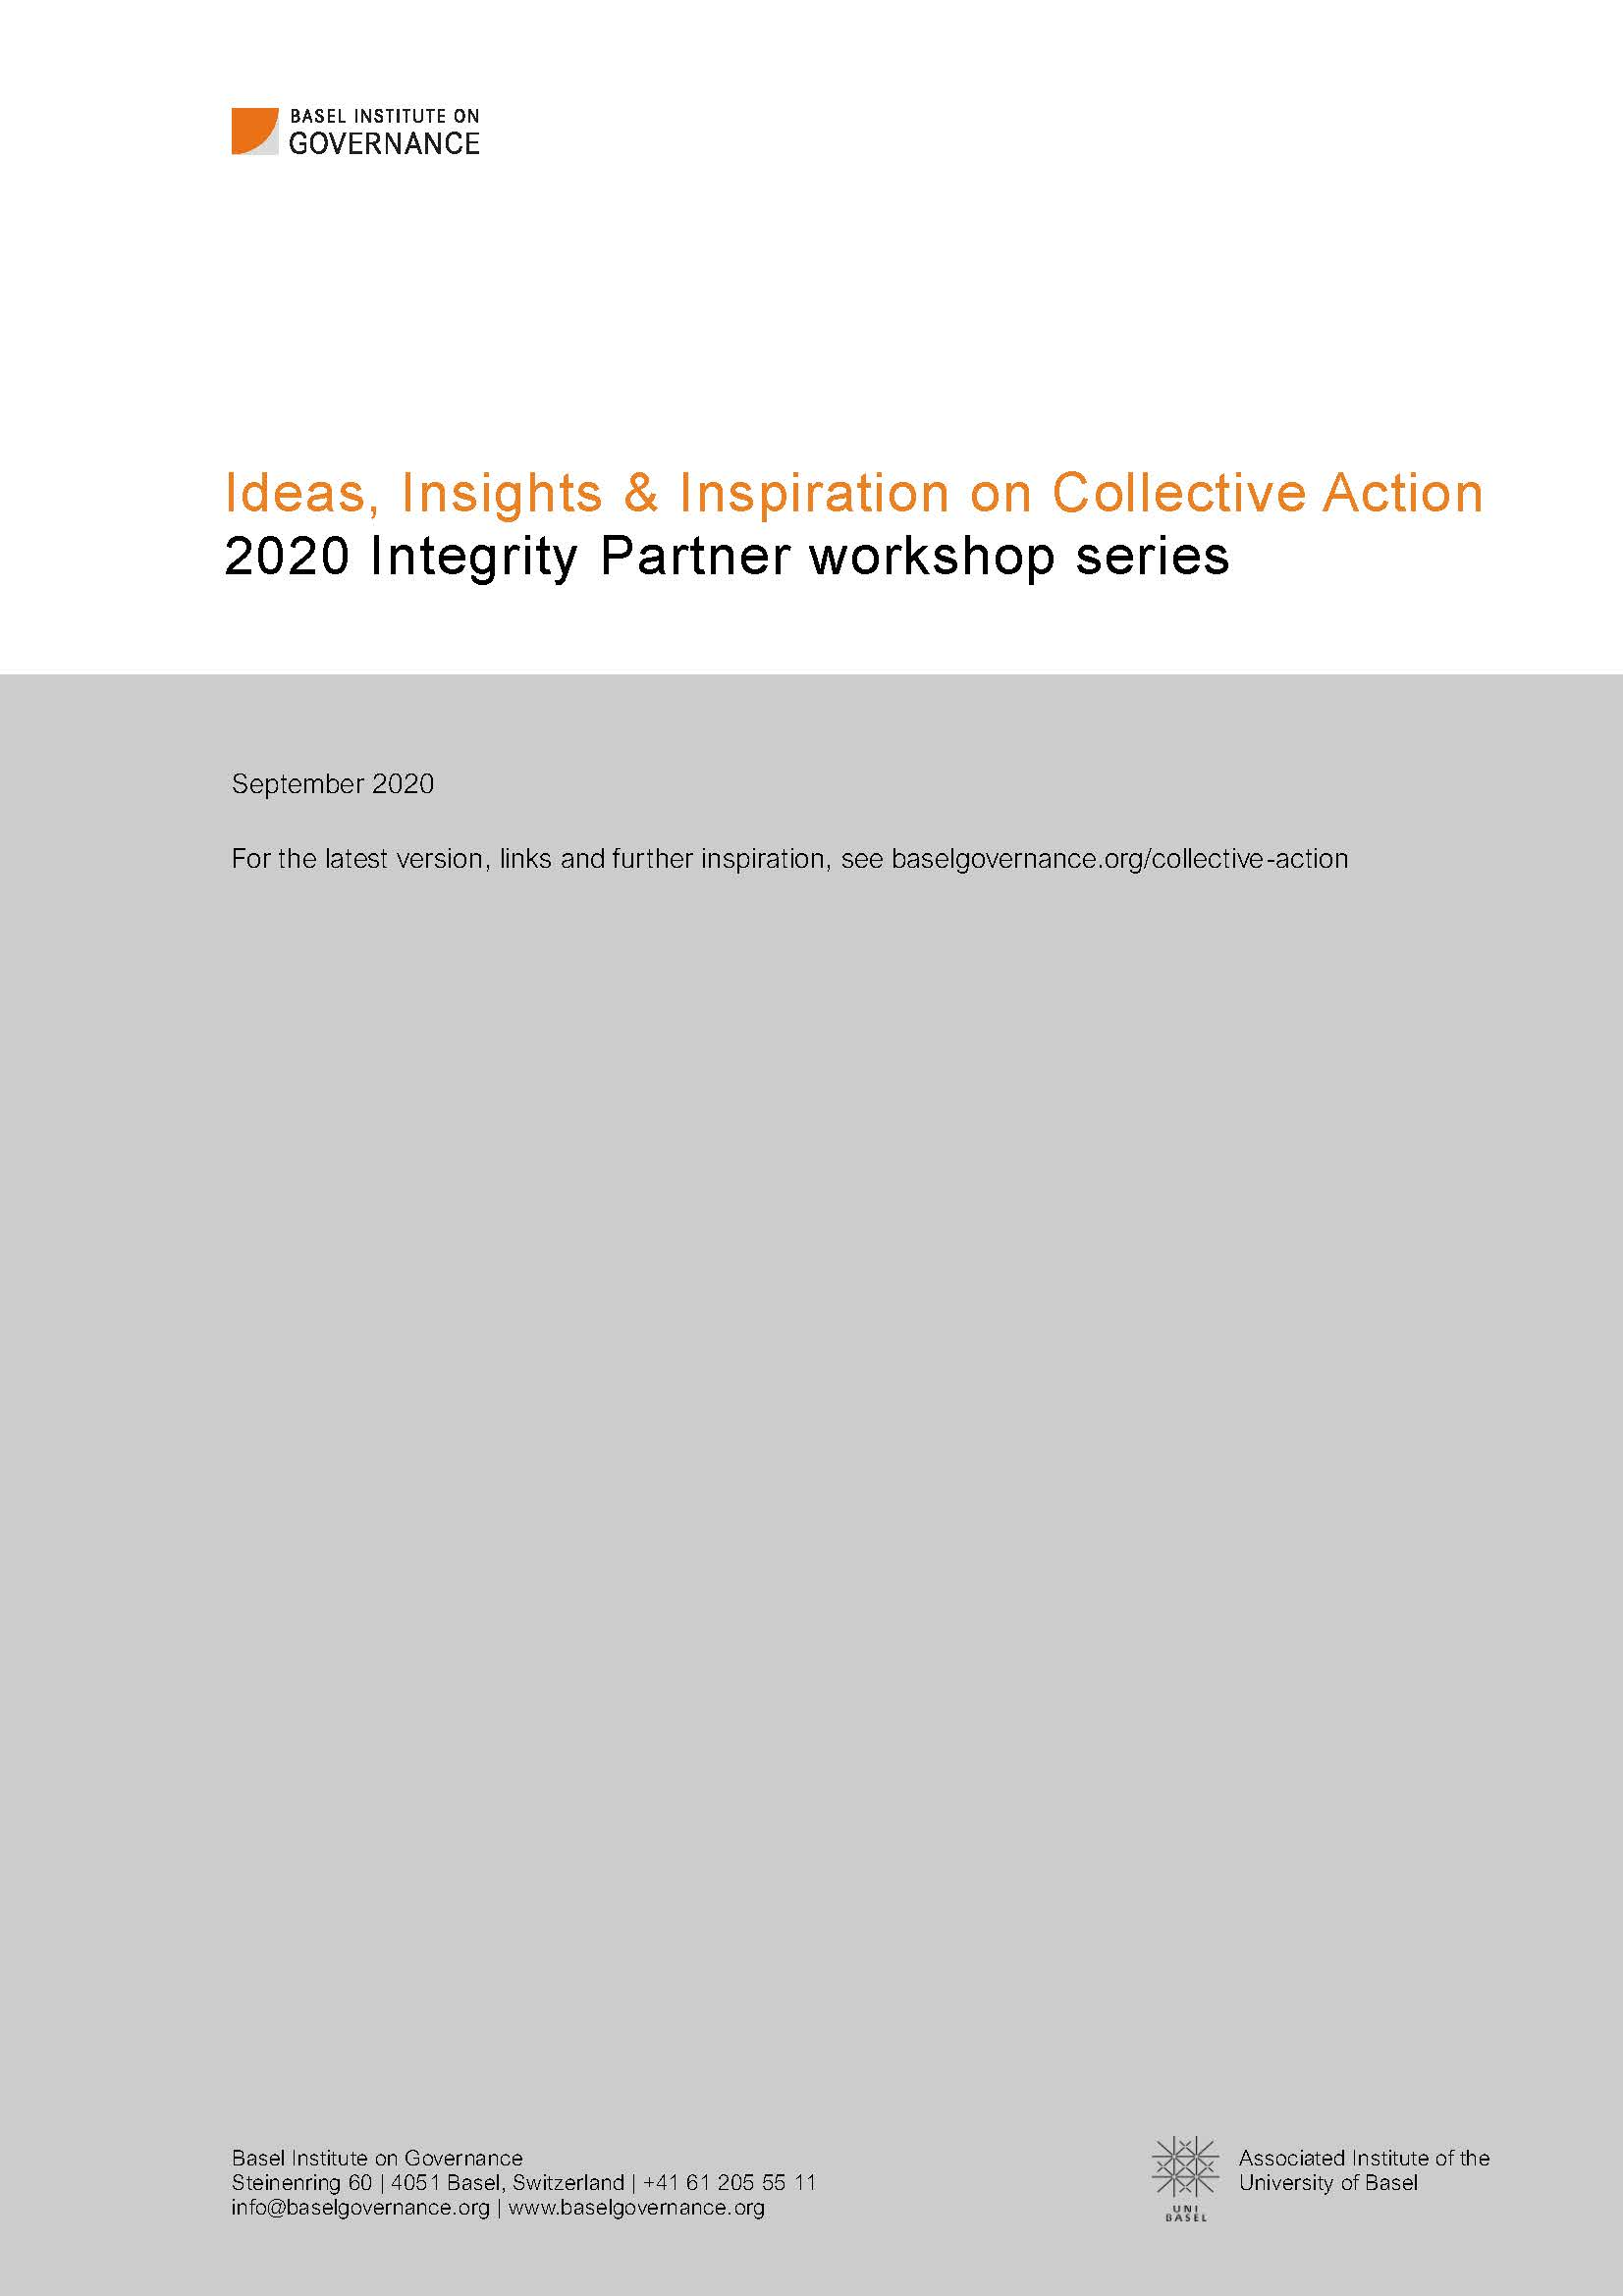 Cover page of Collective Action ideas, insights and inspiration